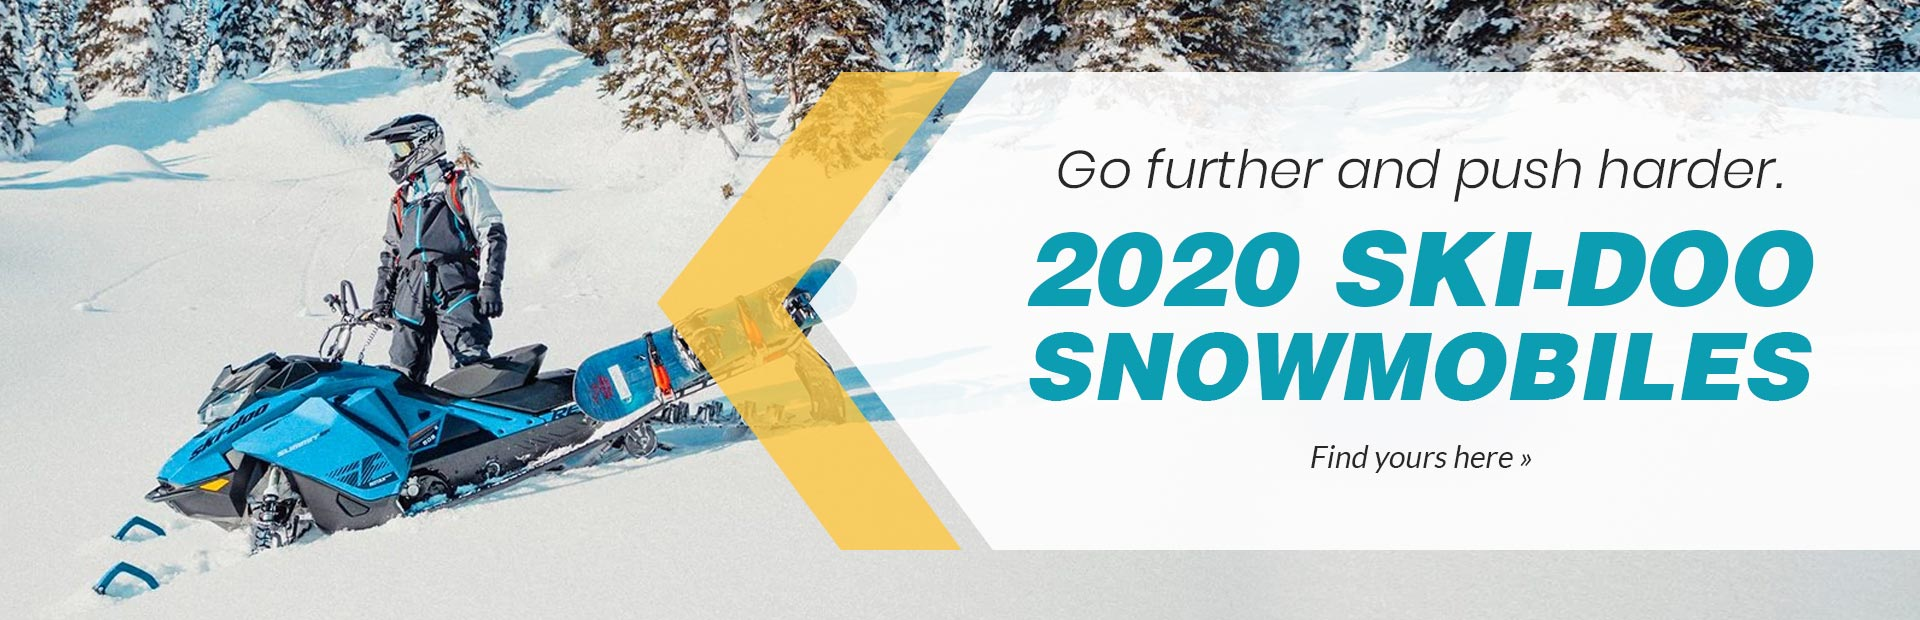 Go further and push harder. 2020 Ski-Doo Snowmobiles: Click here to view our models.